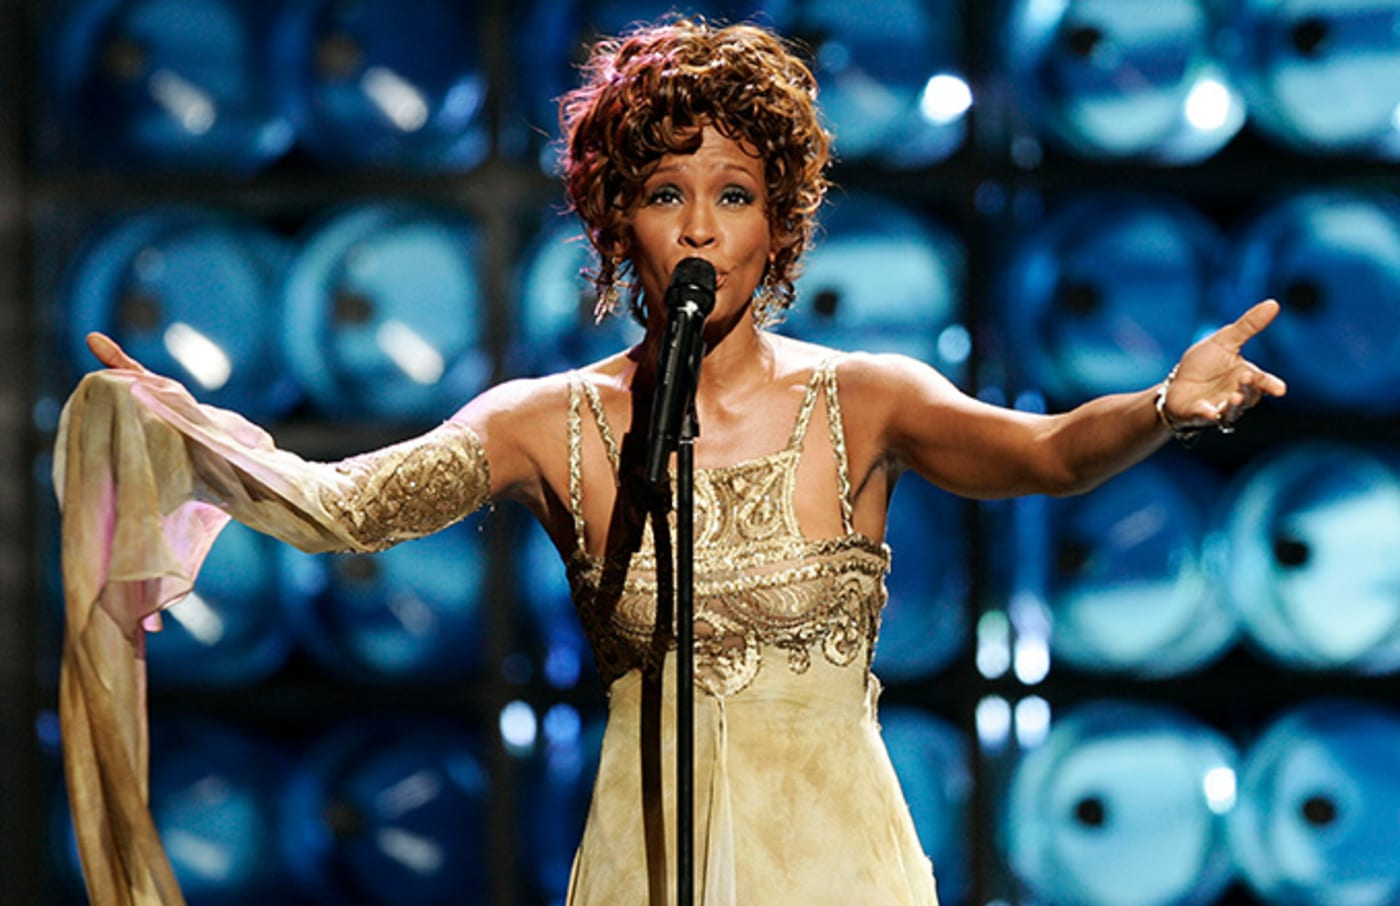 This is a phot of Whitney Houston.